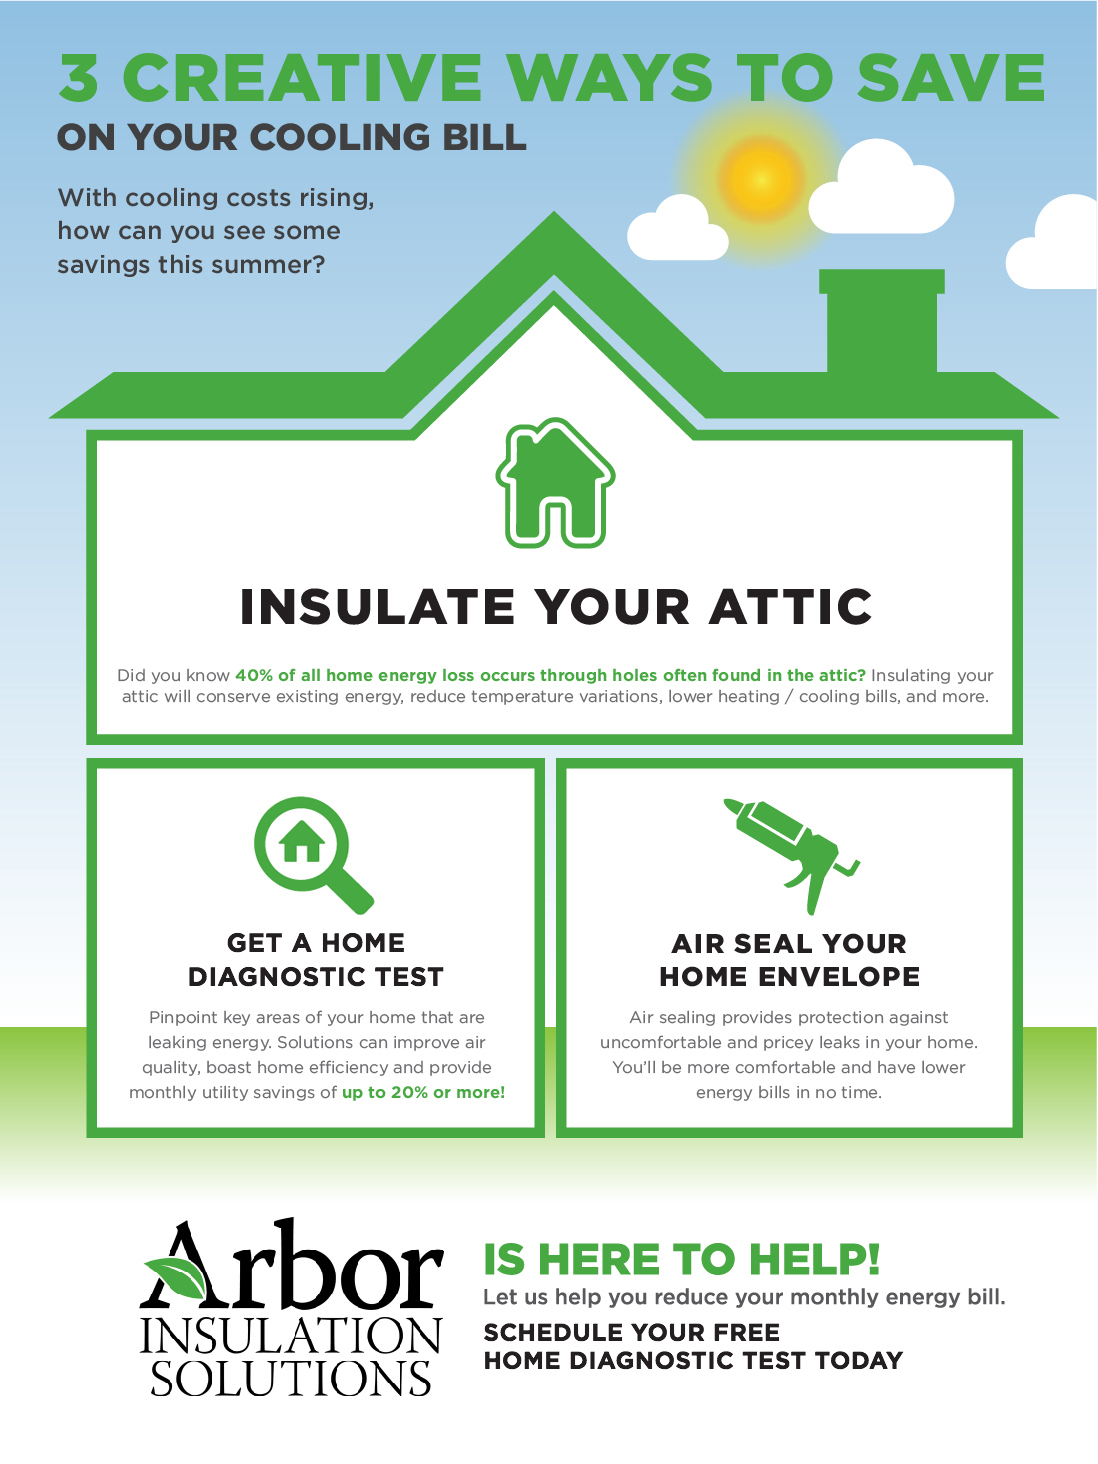 Tips for staying cool this summer in your Atlanta home.